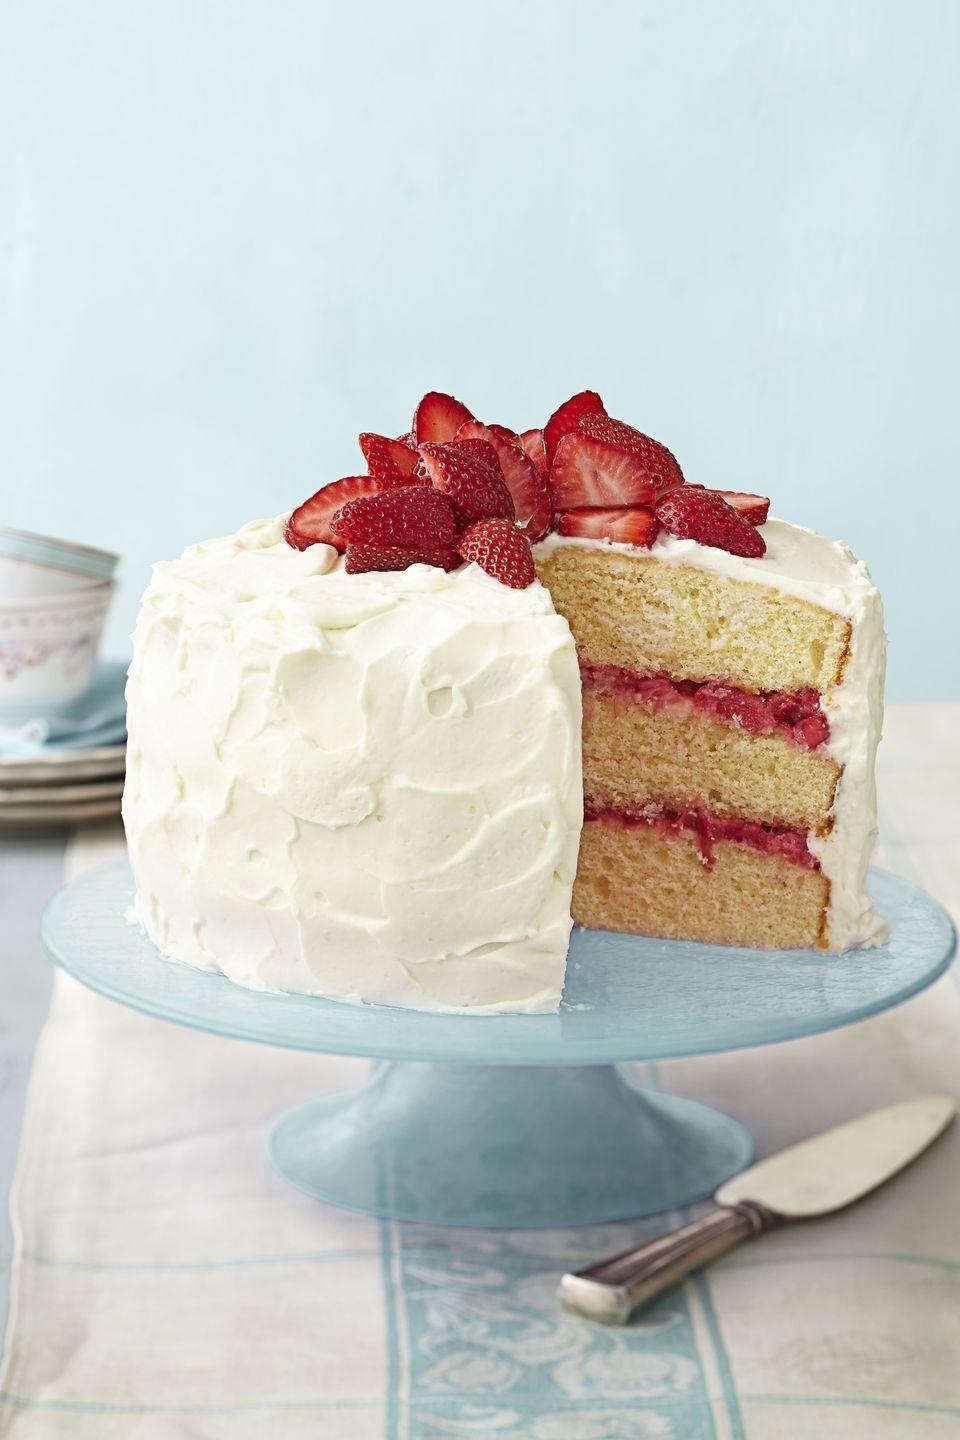 "<p>'Tis the season for strawberry and rhubarb. Skip the pie and pile the fruit on this luscious layered cake.</p><p><em><a href=""https://www.goodhousekeeping.com/food-recipes/a15071/strawberry-rhubarb-layer-cake-recipe-ghk0414/"" rel=""nofollow noopener"" target=""_blank"" data-ylk=""slk:Get the recipe for Strawberry Rhubarb Layer Cake »"" class=""link rapid-noclick-resp"">Get the recipe for Strawberry Rhubarb Layer Cake »</a></em></p>"